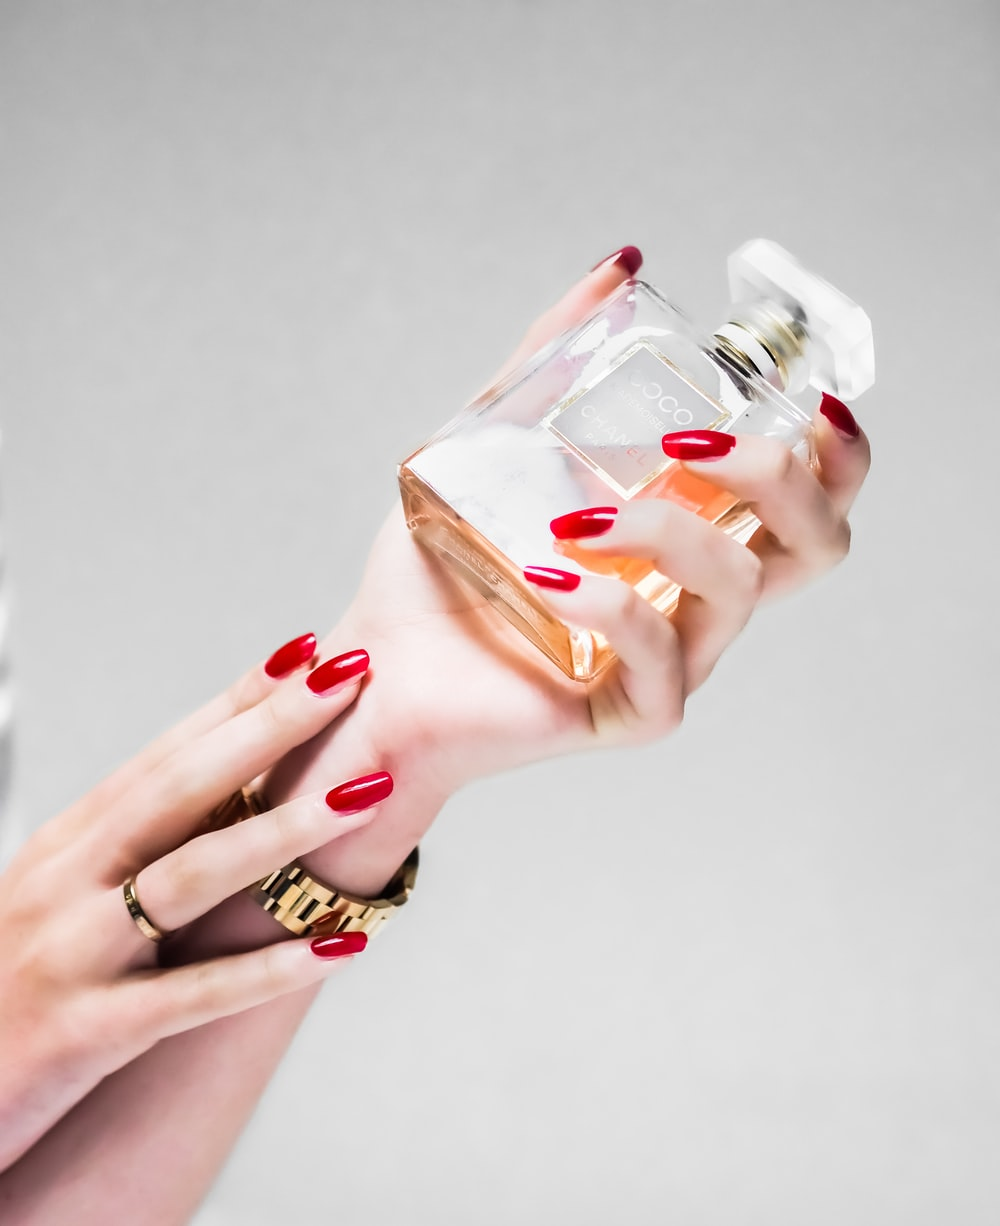 person holding clear glass bottle